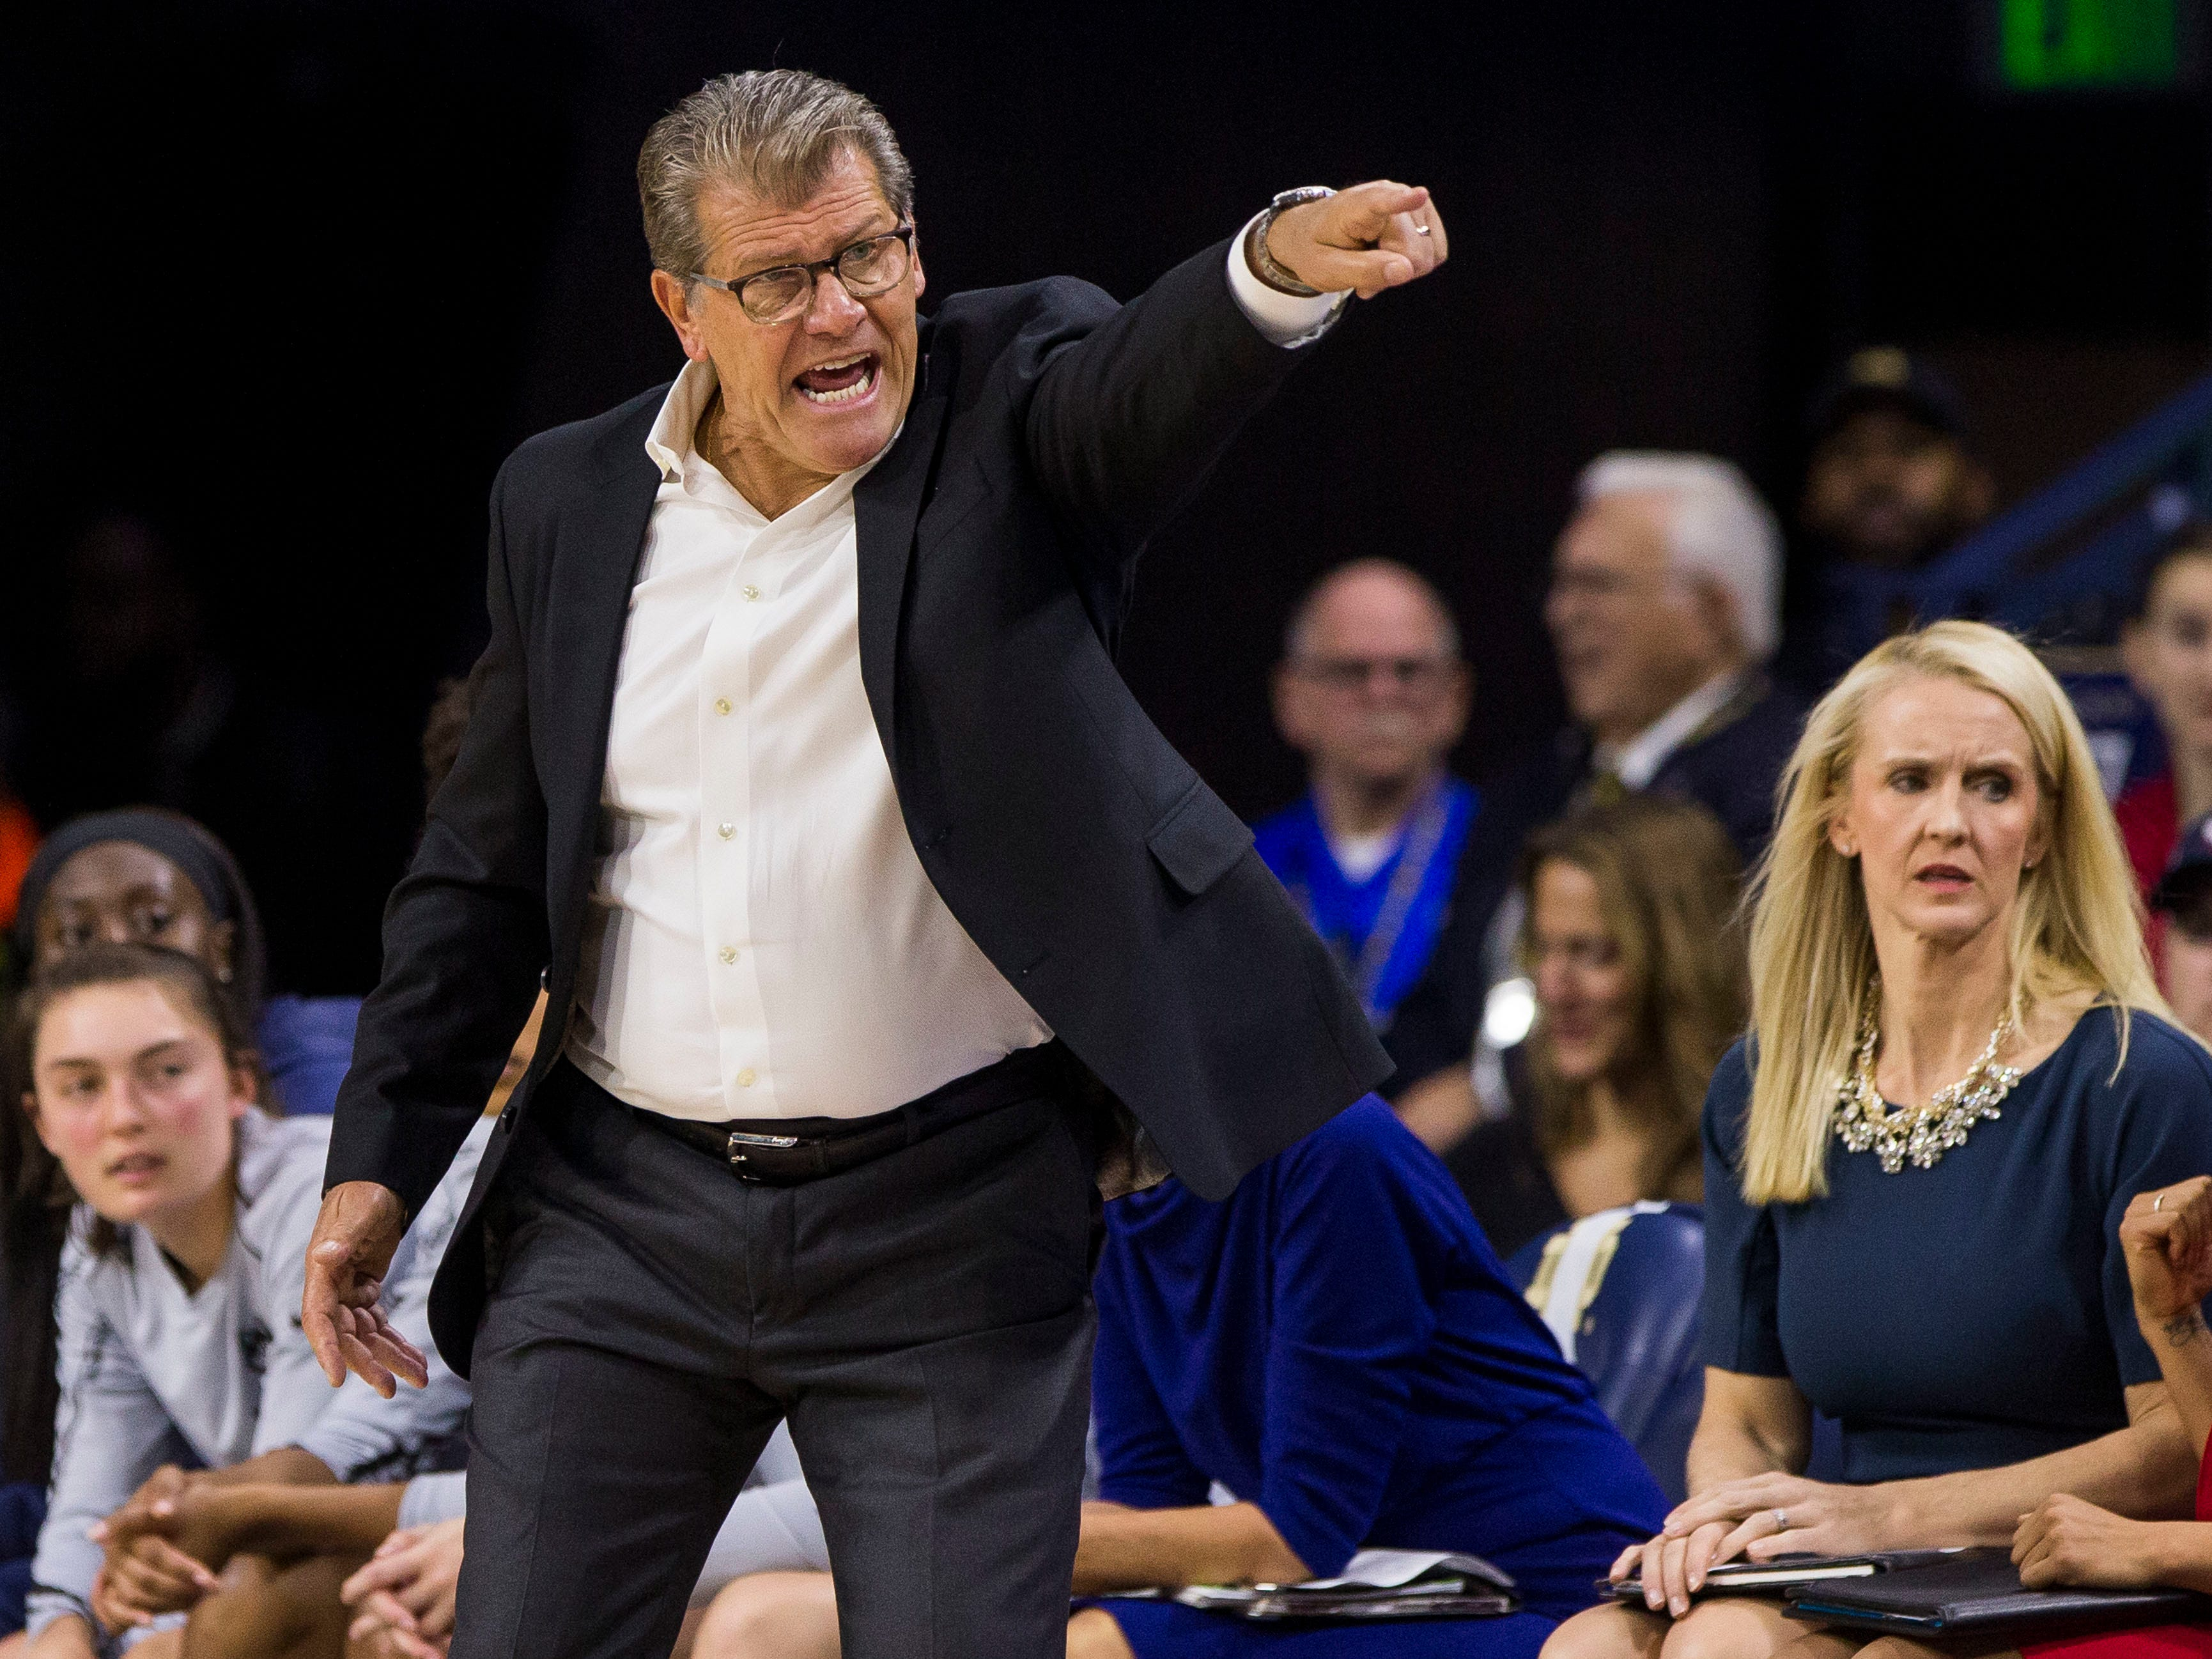 Connecticut head coach Geno Auriemma directs players during the first half of an NCAA college basketball game Sunday, Dec. 2, 2018, in South Bend, Ind.